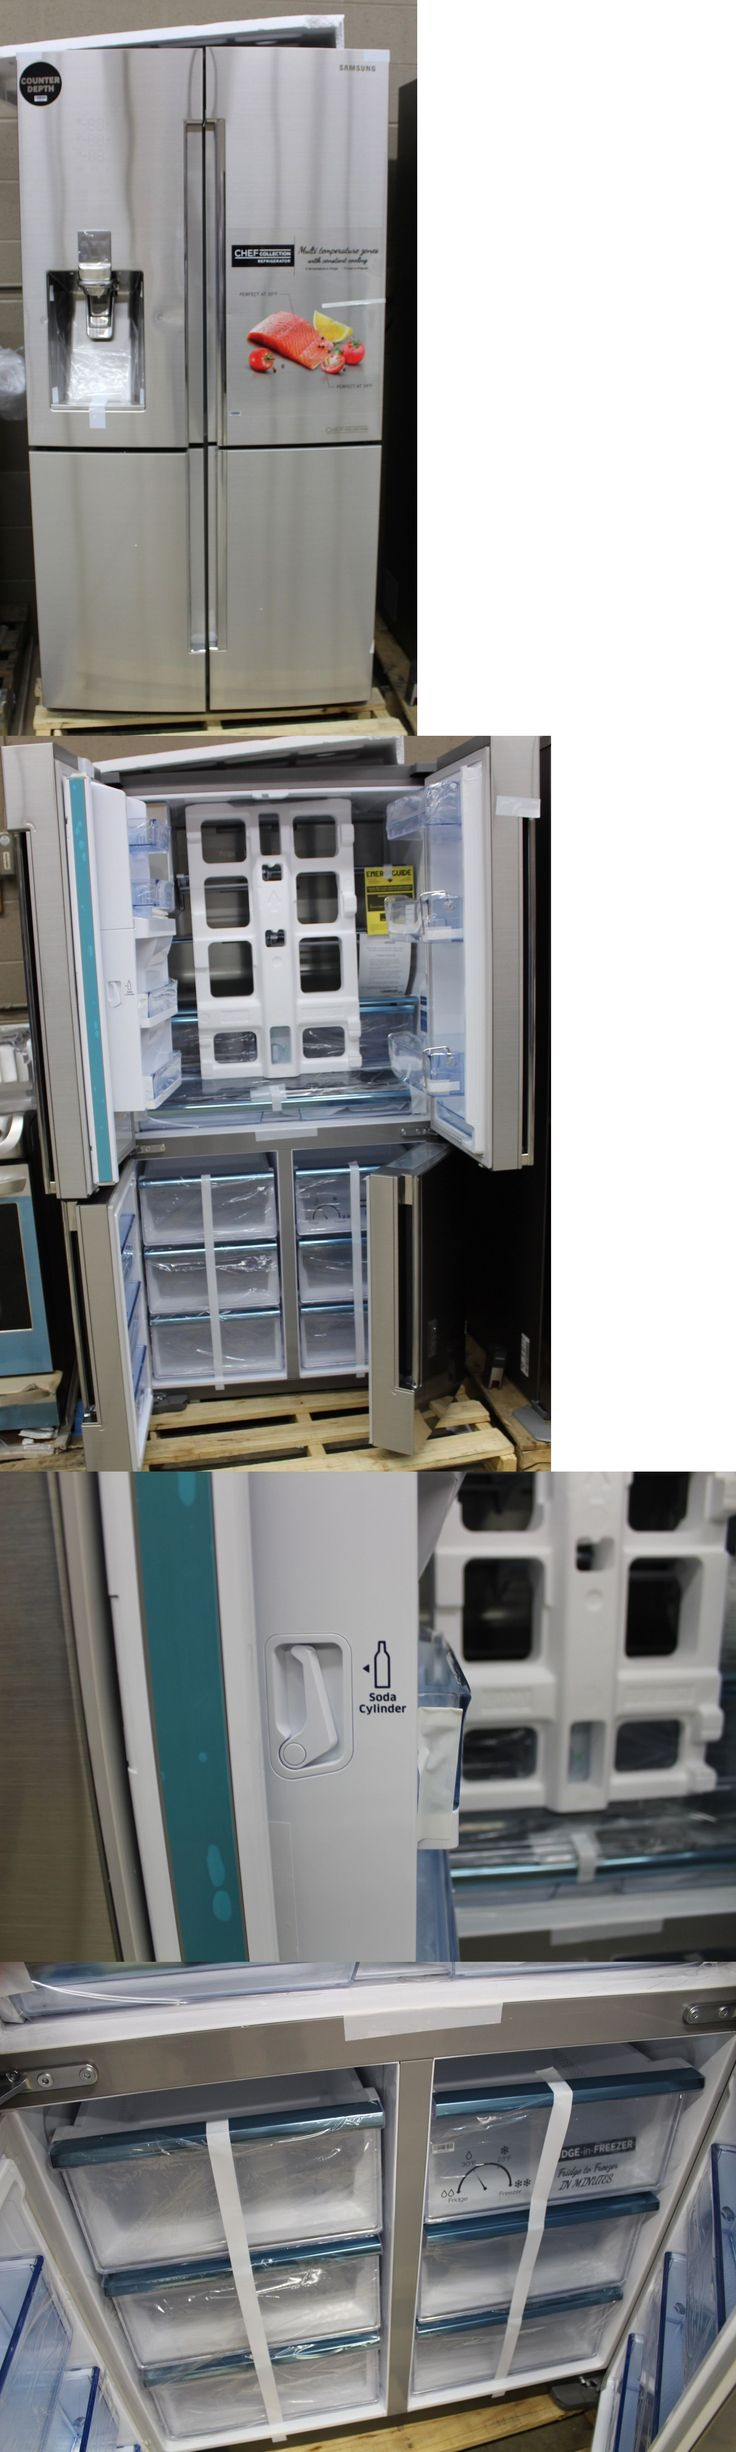 1000 ideas about counter depth refrigerator on pinterest for I kitchens and renovations walsall